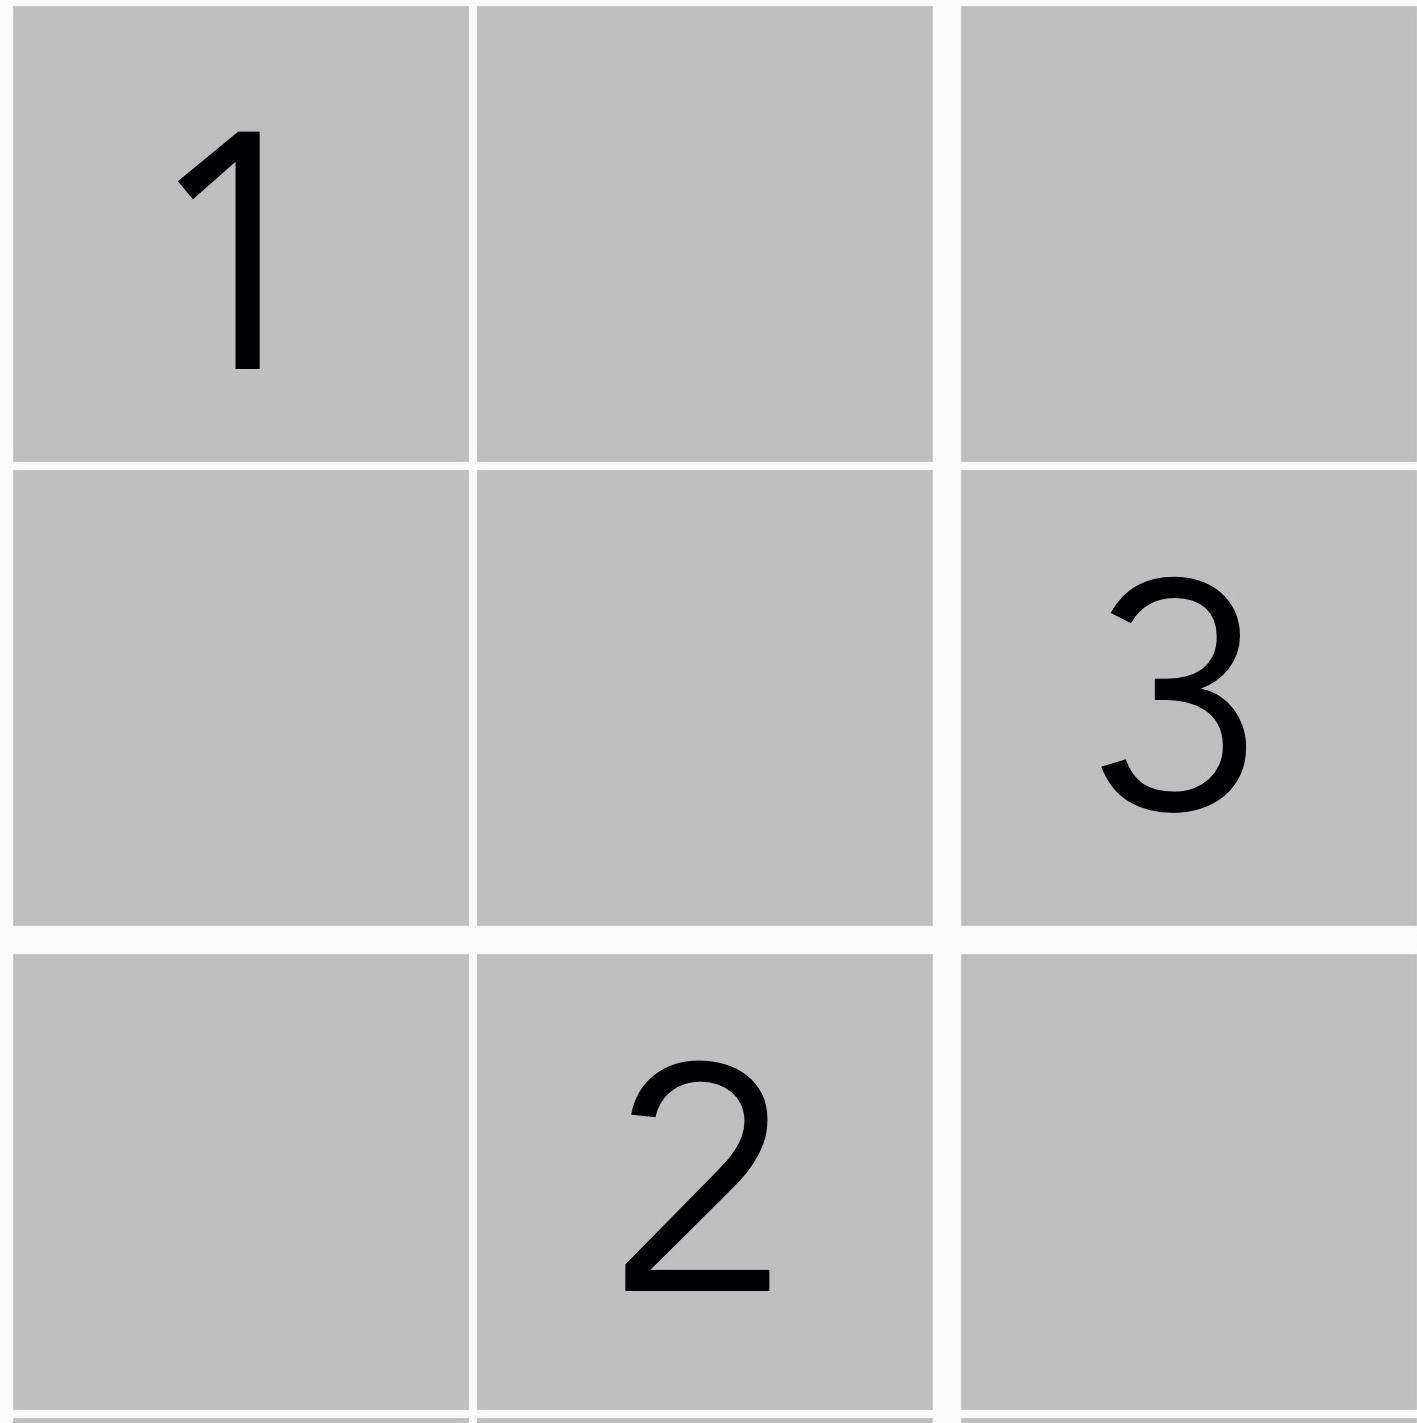 Well done! The next hint consists of this illustration: Note: The solution contains 9 numbers. Please write them in this order: TopLeft, TopMiddle, TopRight, MiddleLeft, MiddleMiddle, MiddleRight, BottomLeft, BottomMiddle, BottomRight  HINT: The idea is the same as in the puzzle game Sudoku.